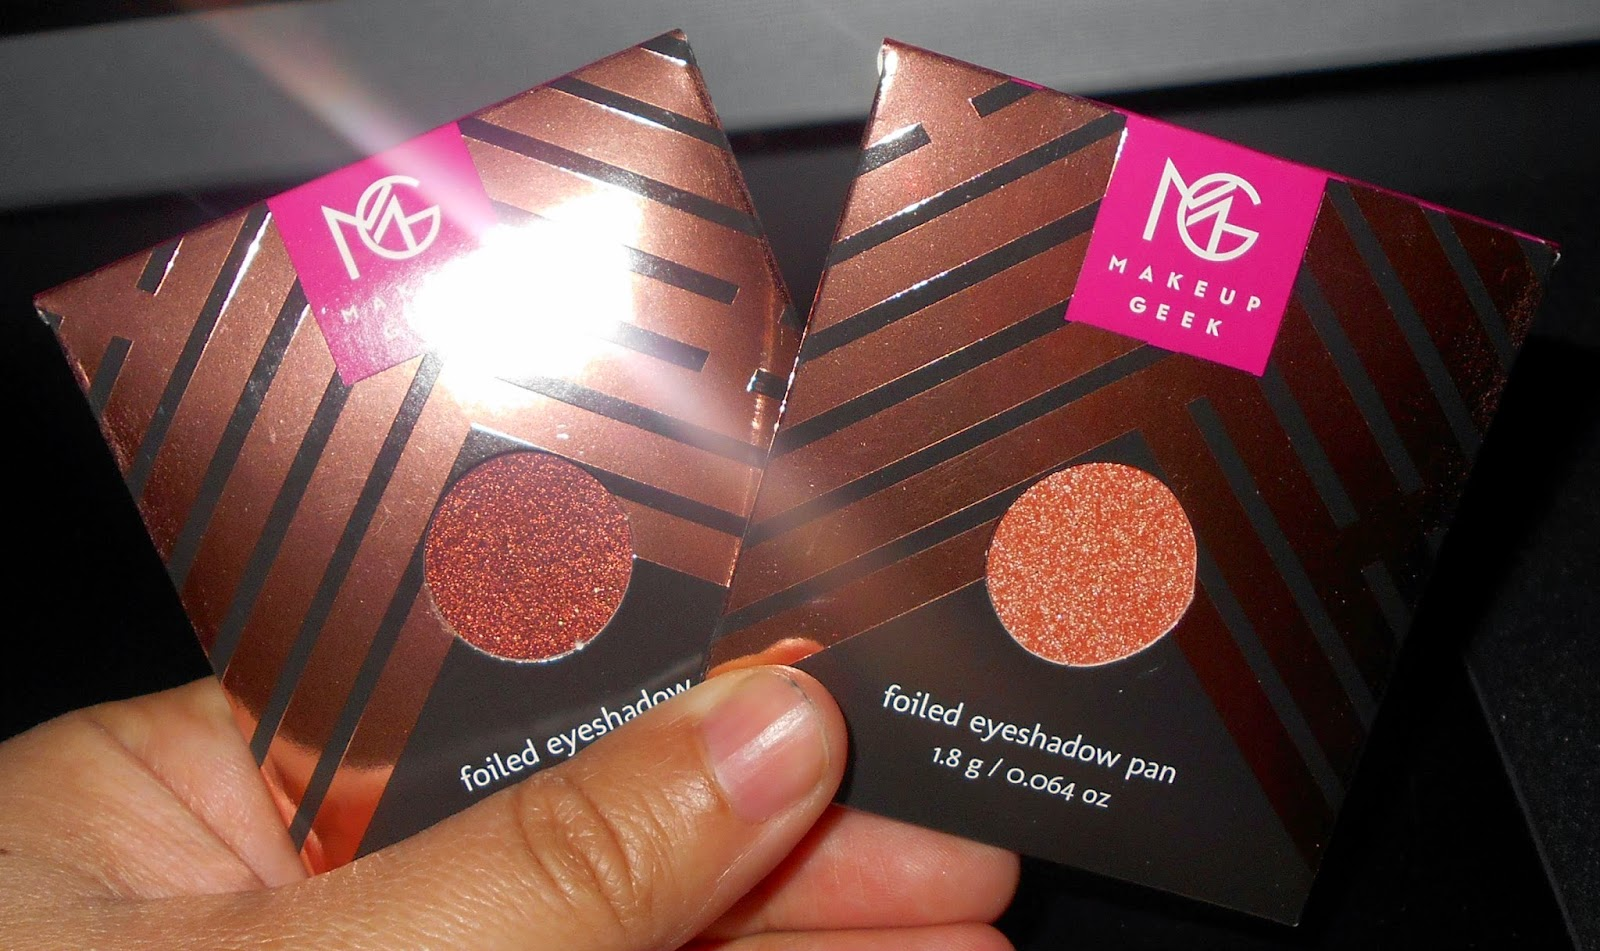 Makeup Geek Foiled Eyeshadows & Blush